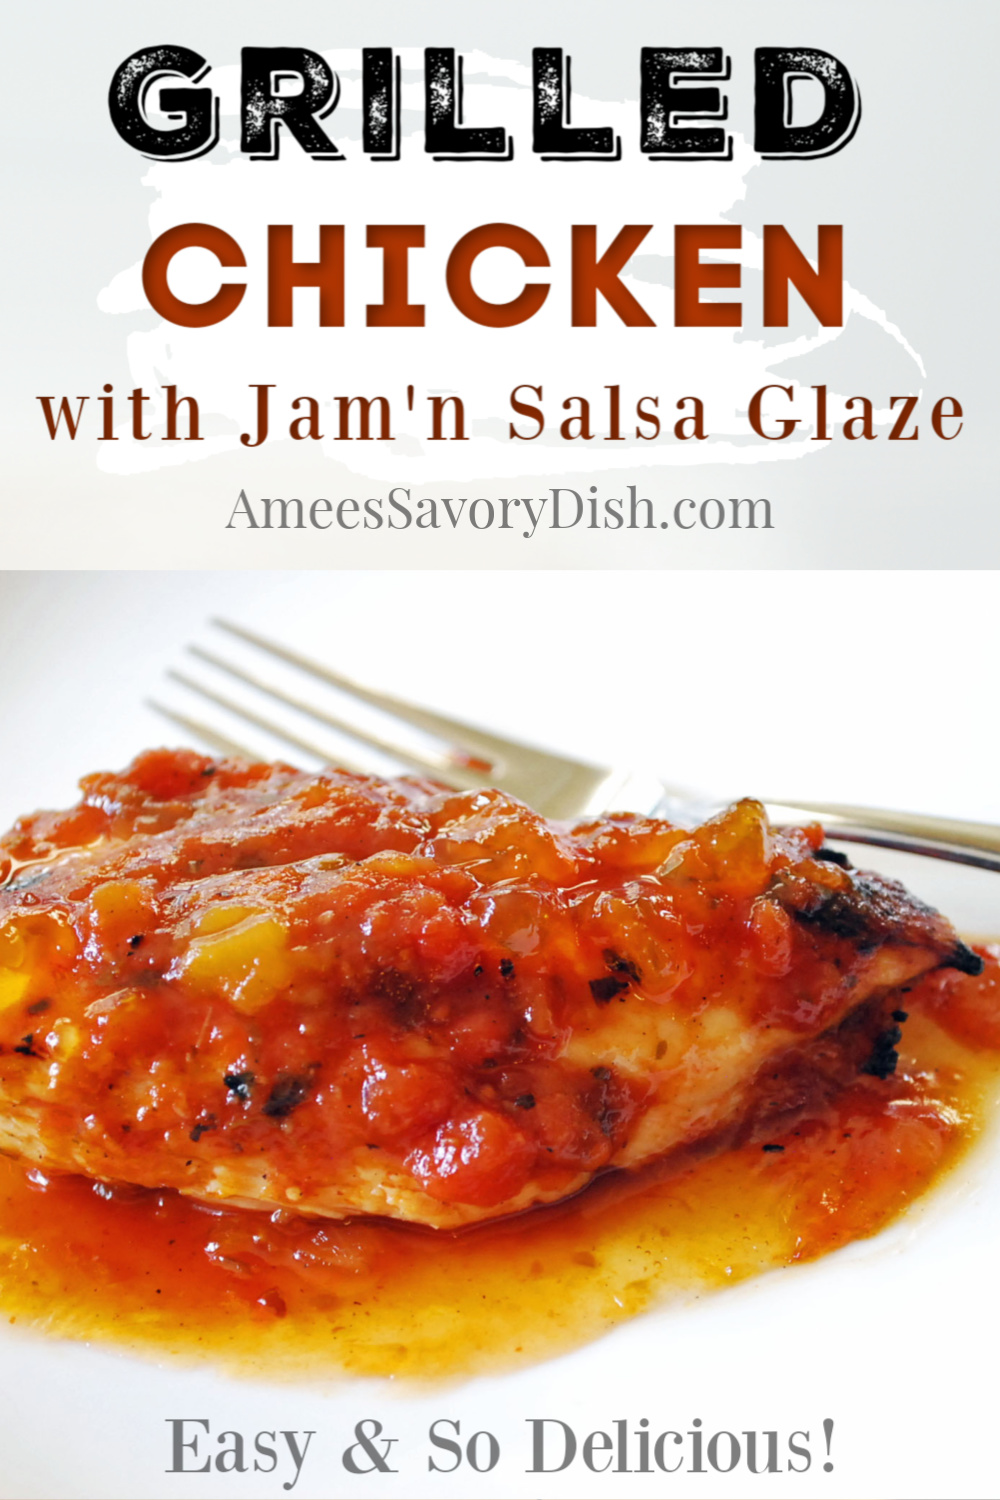 This Jam'n Salsa glazed grilled chicken is a flavor-packed chicken dinner recipe! Fruit salsa and fruit preserves create a delicious glaze for the grilled chicken that will become a family favorite! #grilledchicken #chickenrecipe #glazedchicken #easychickenrecipe via @Ameecooks